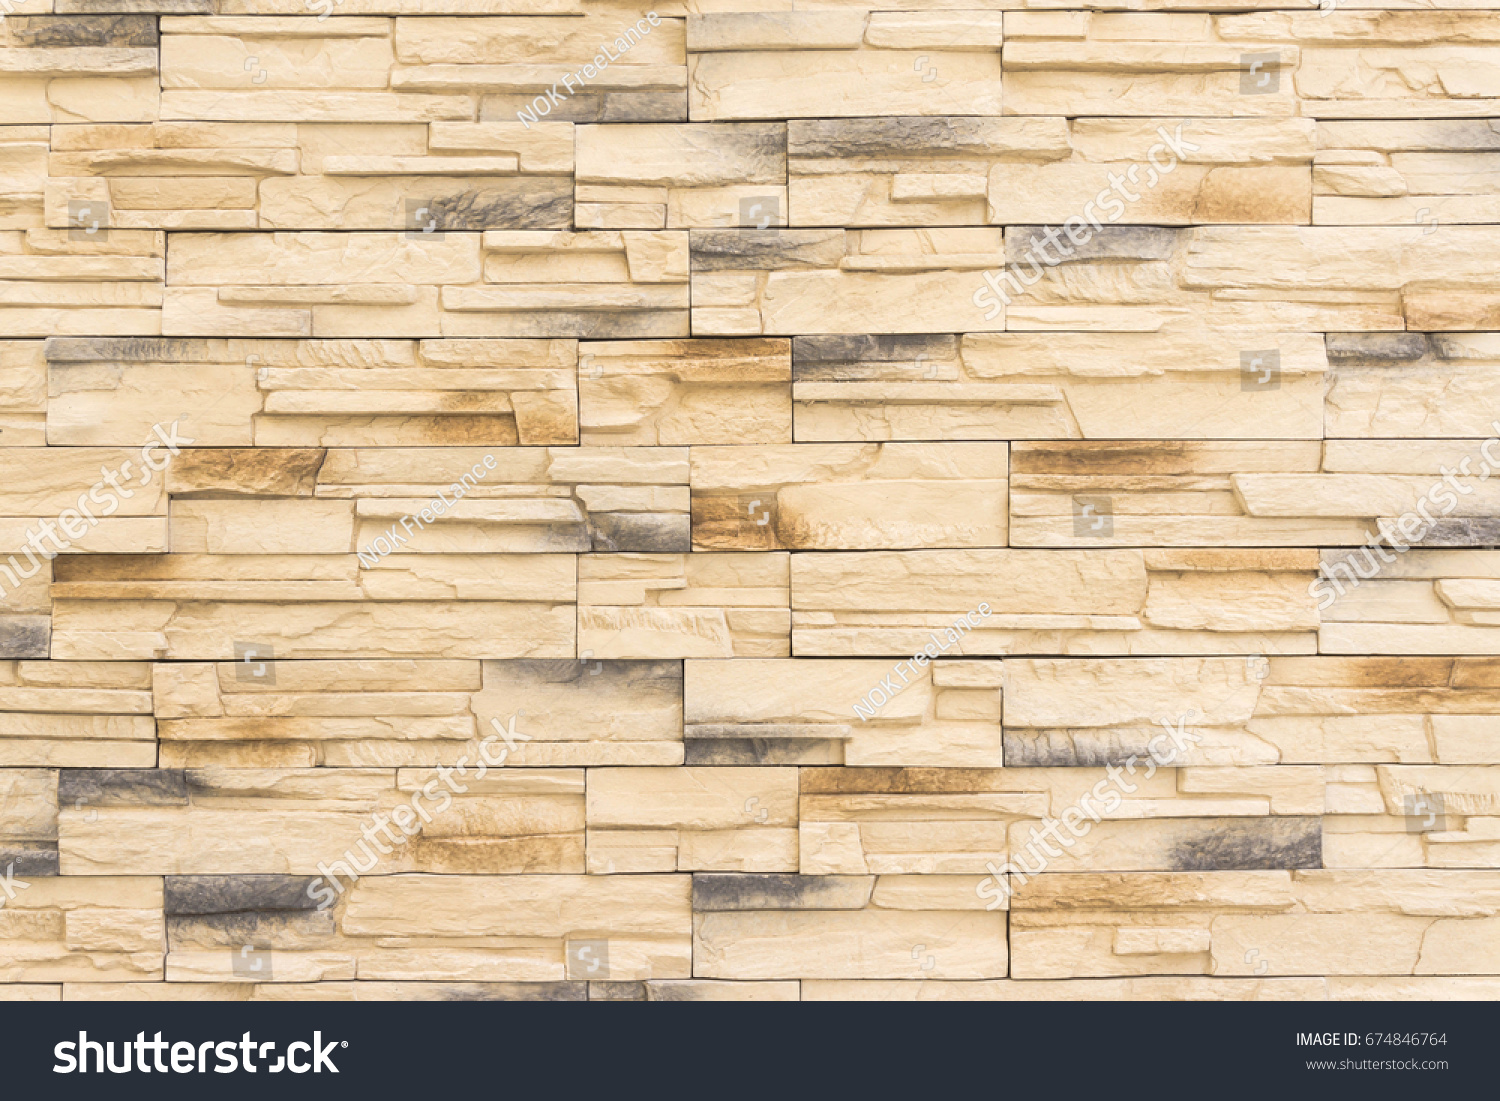 Old Brown Bricks Wall Pattern Brick Stock Photo (Edit Now)- Shutterstock